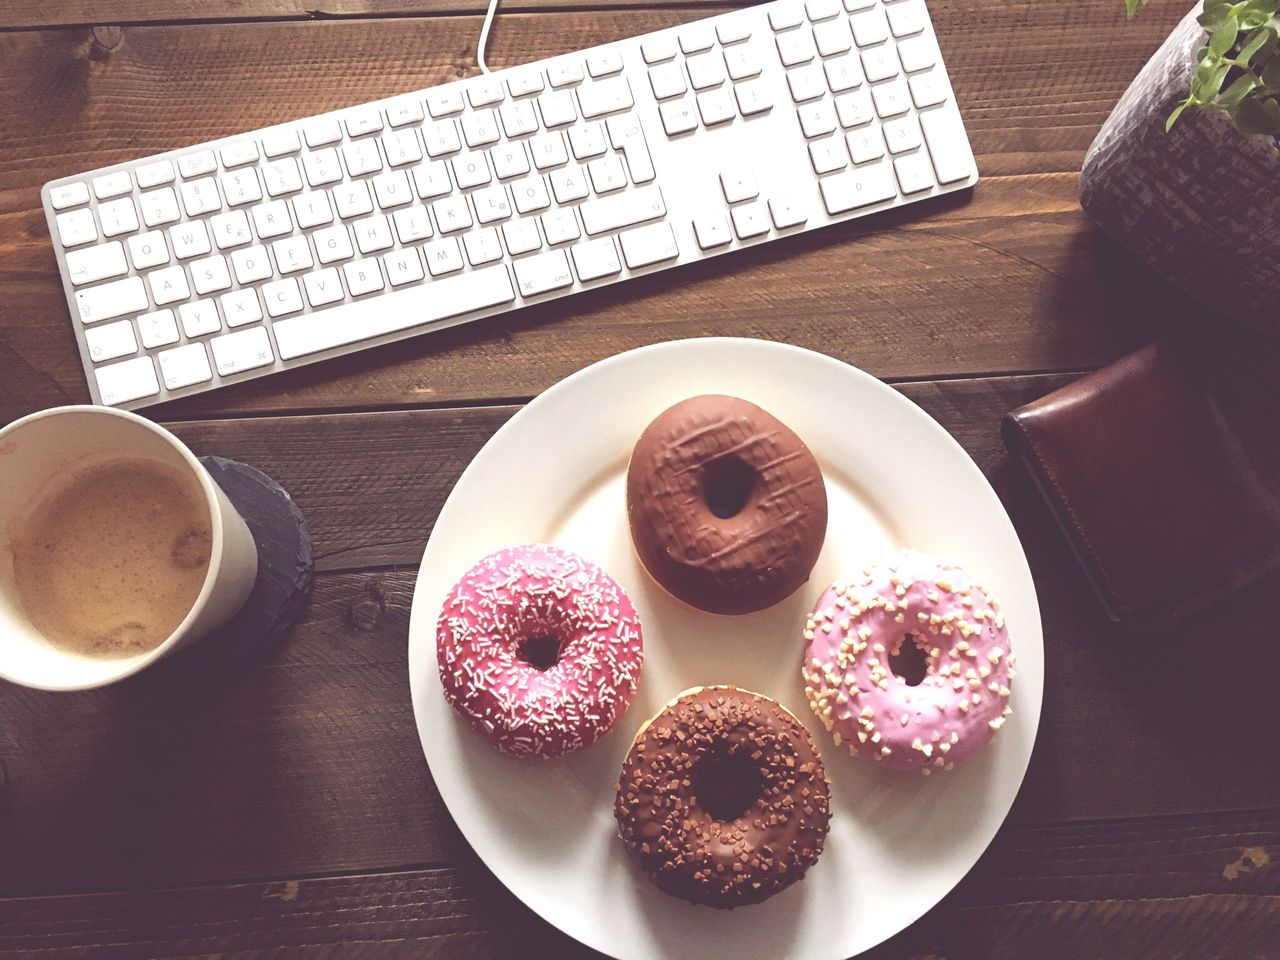 High Angle View Of Donuts In Plate By Keyboard On Wooden Table